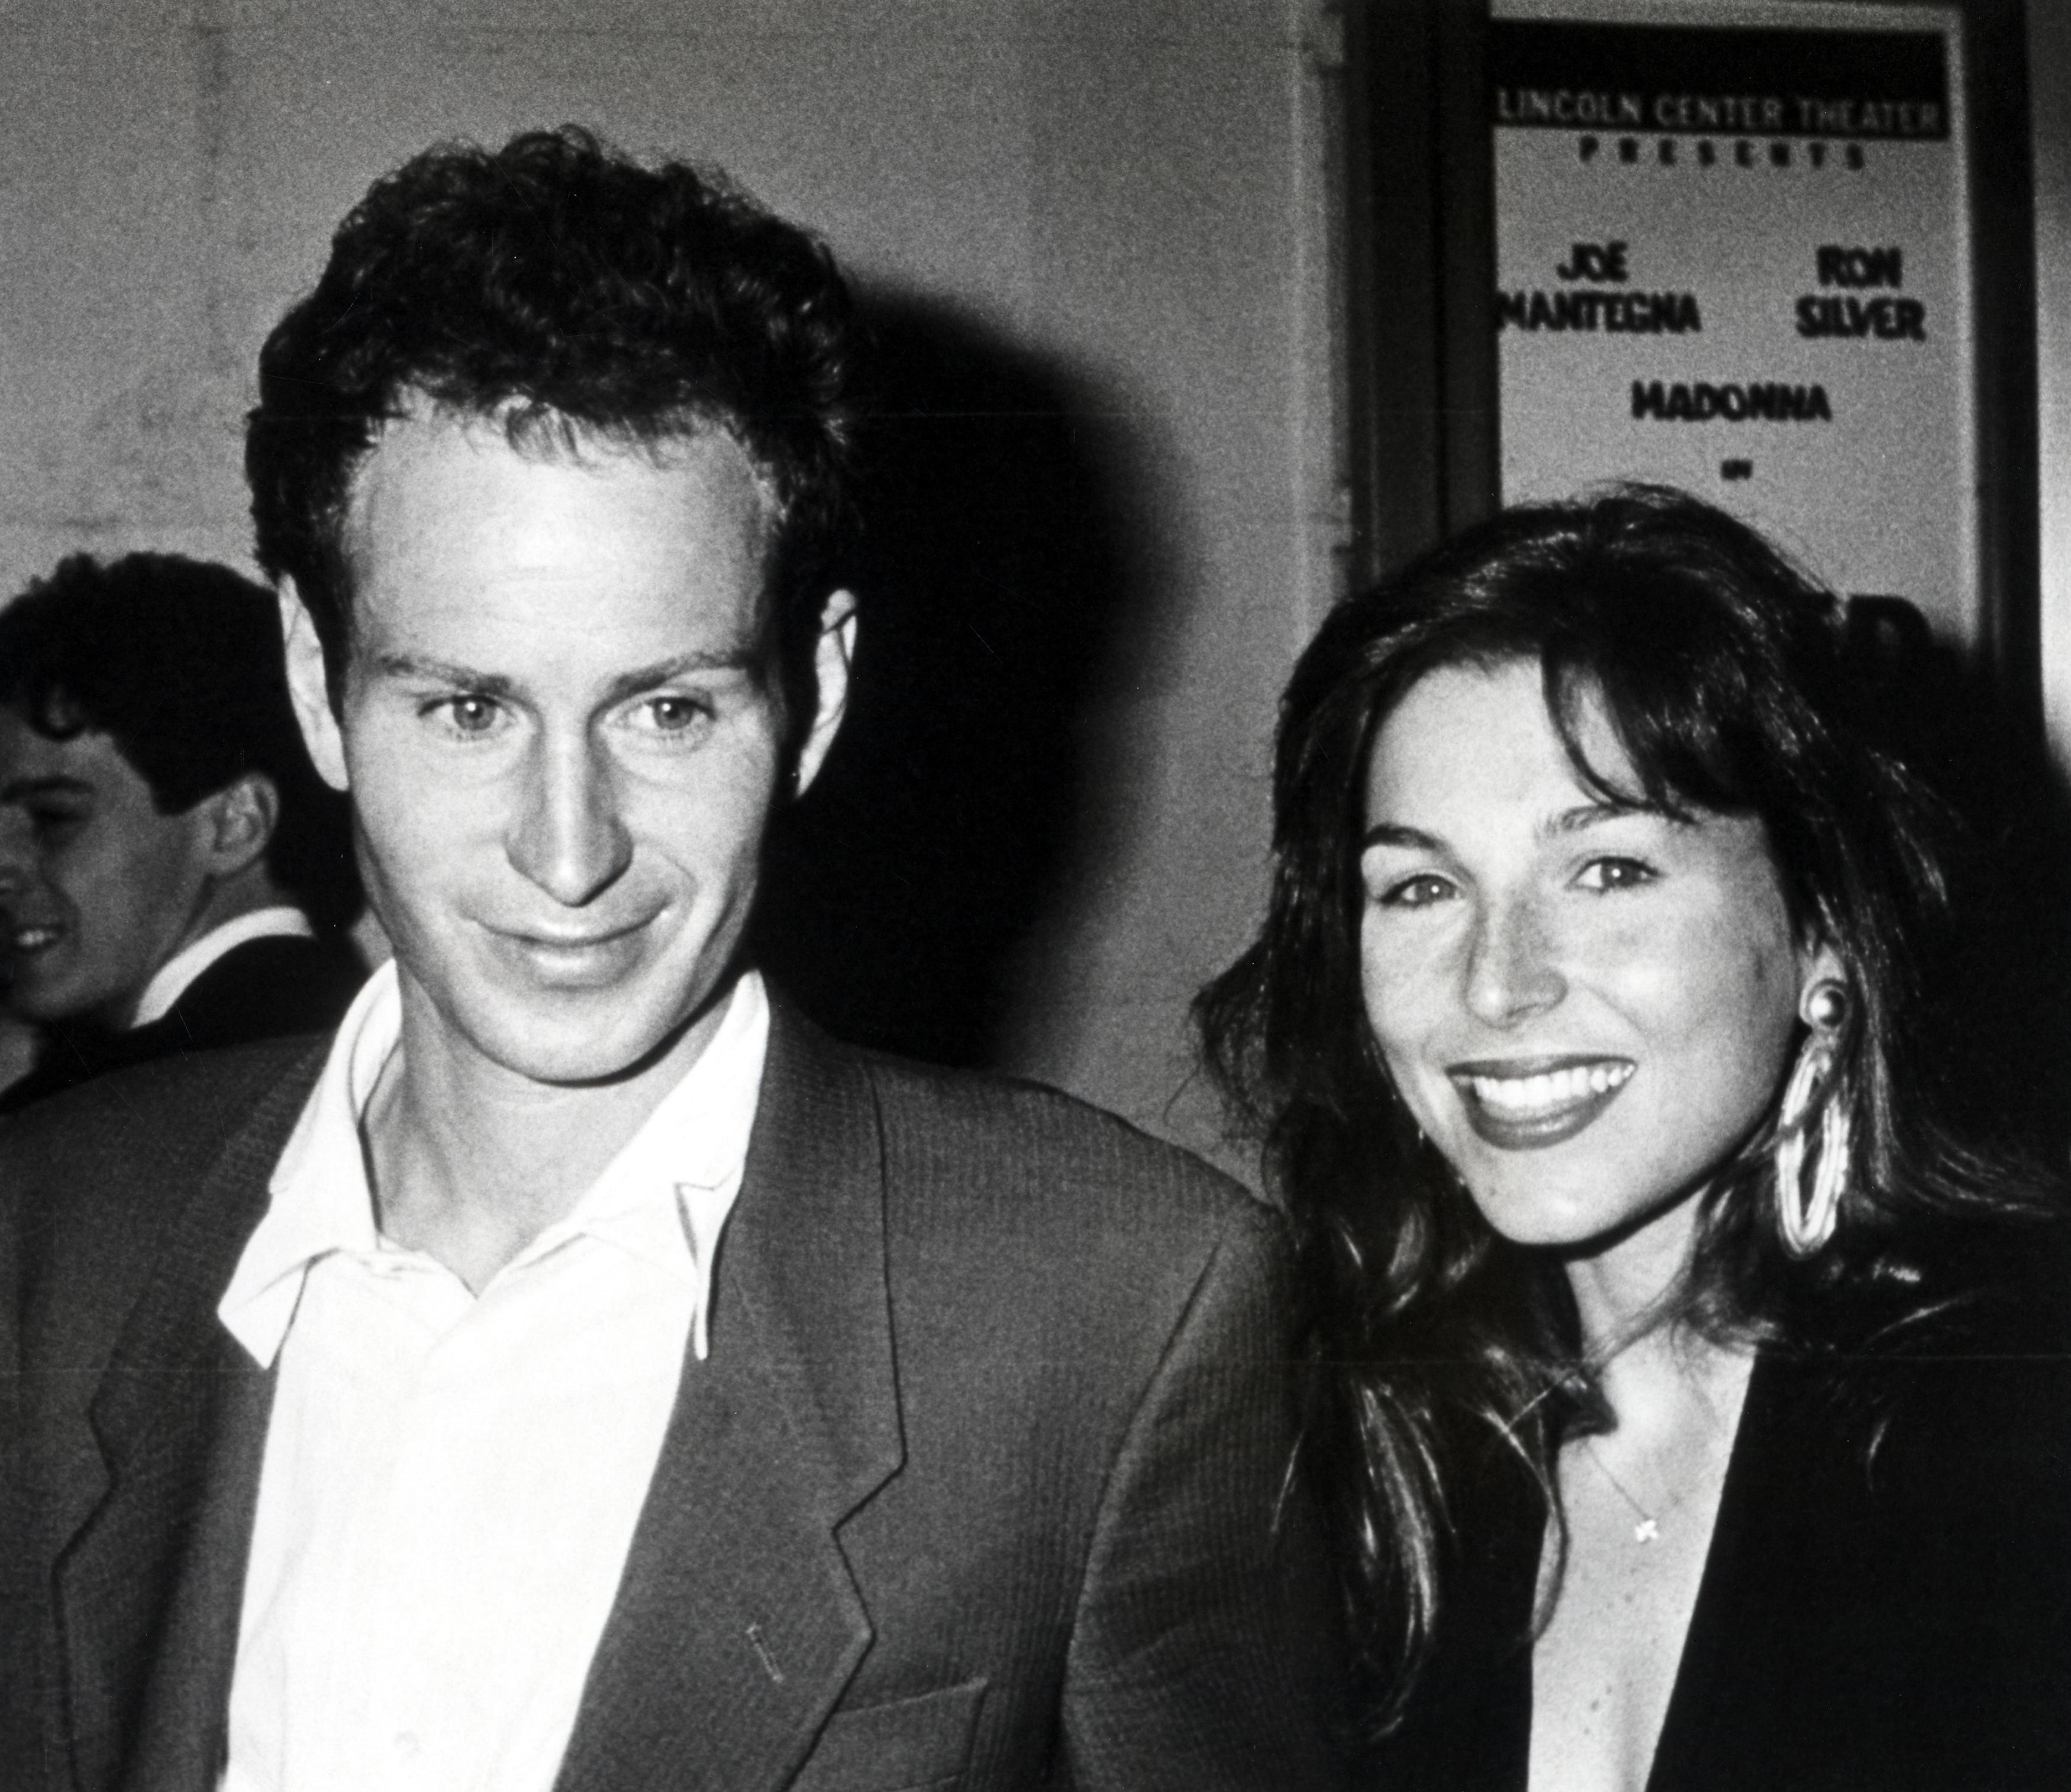 John McEnroe and Tatum O'Neal together in 1988. (Photo: Ron Galella/Ron Galella Collection via Getty Images)